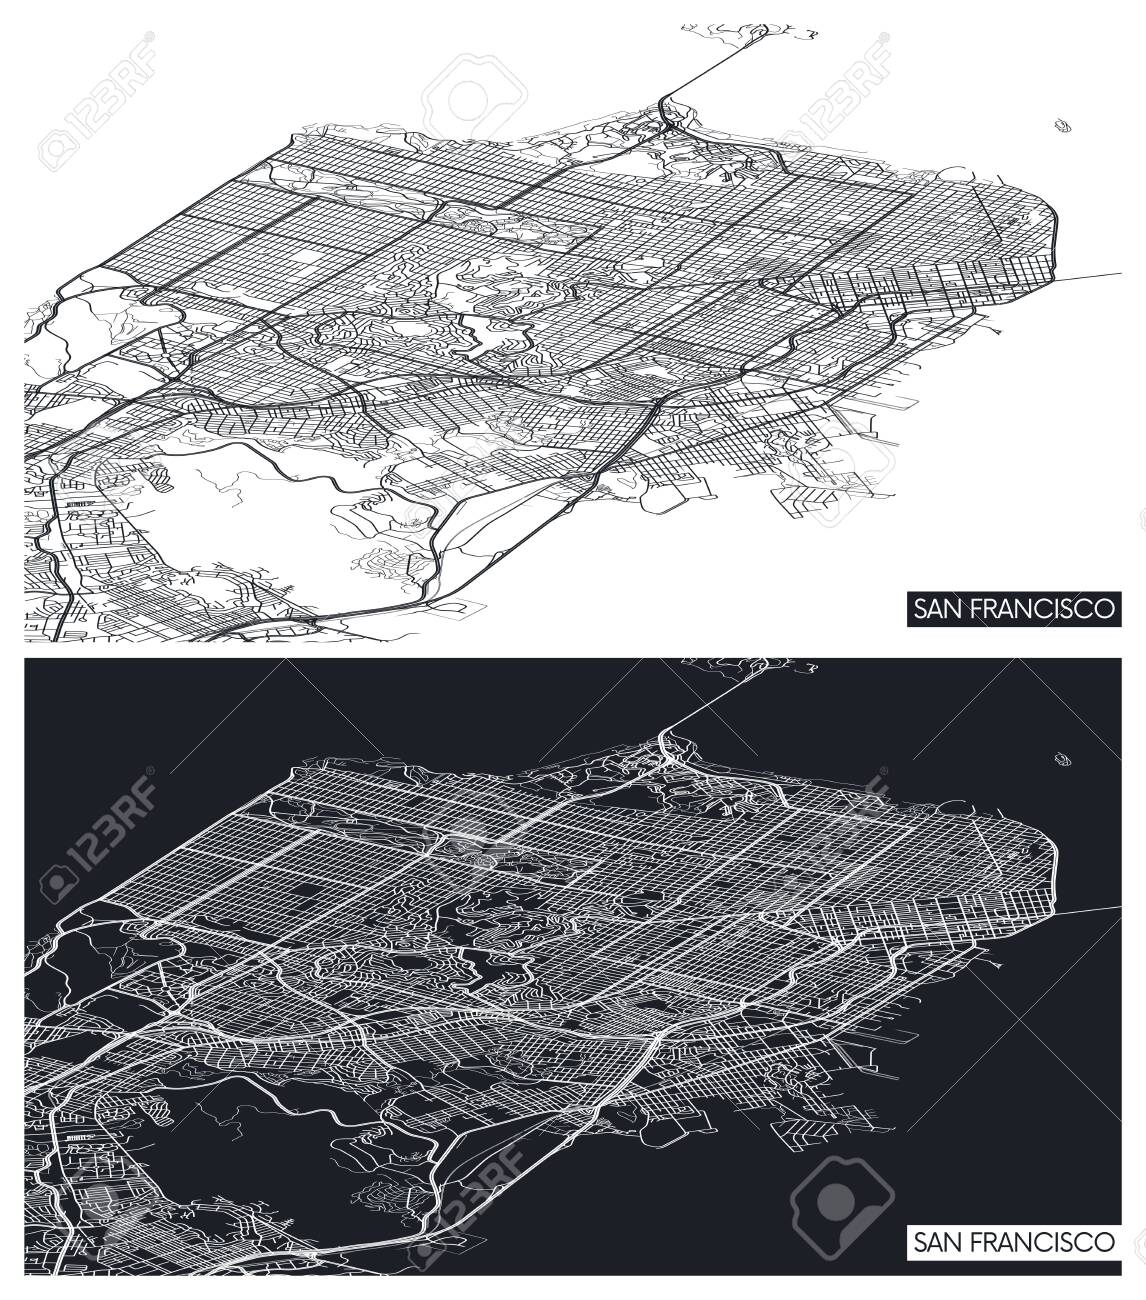 Aerial top view city map San Francisco, black and white detailed plan, urban grid in perspective, vector illustration - 132992762